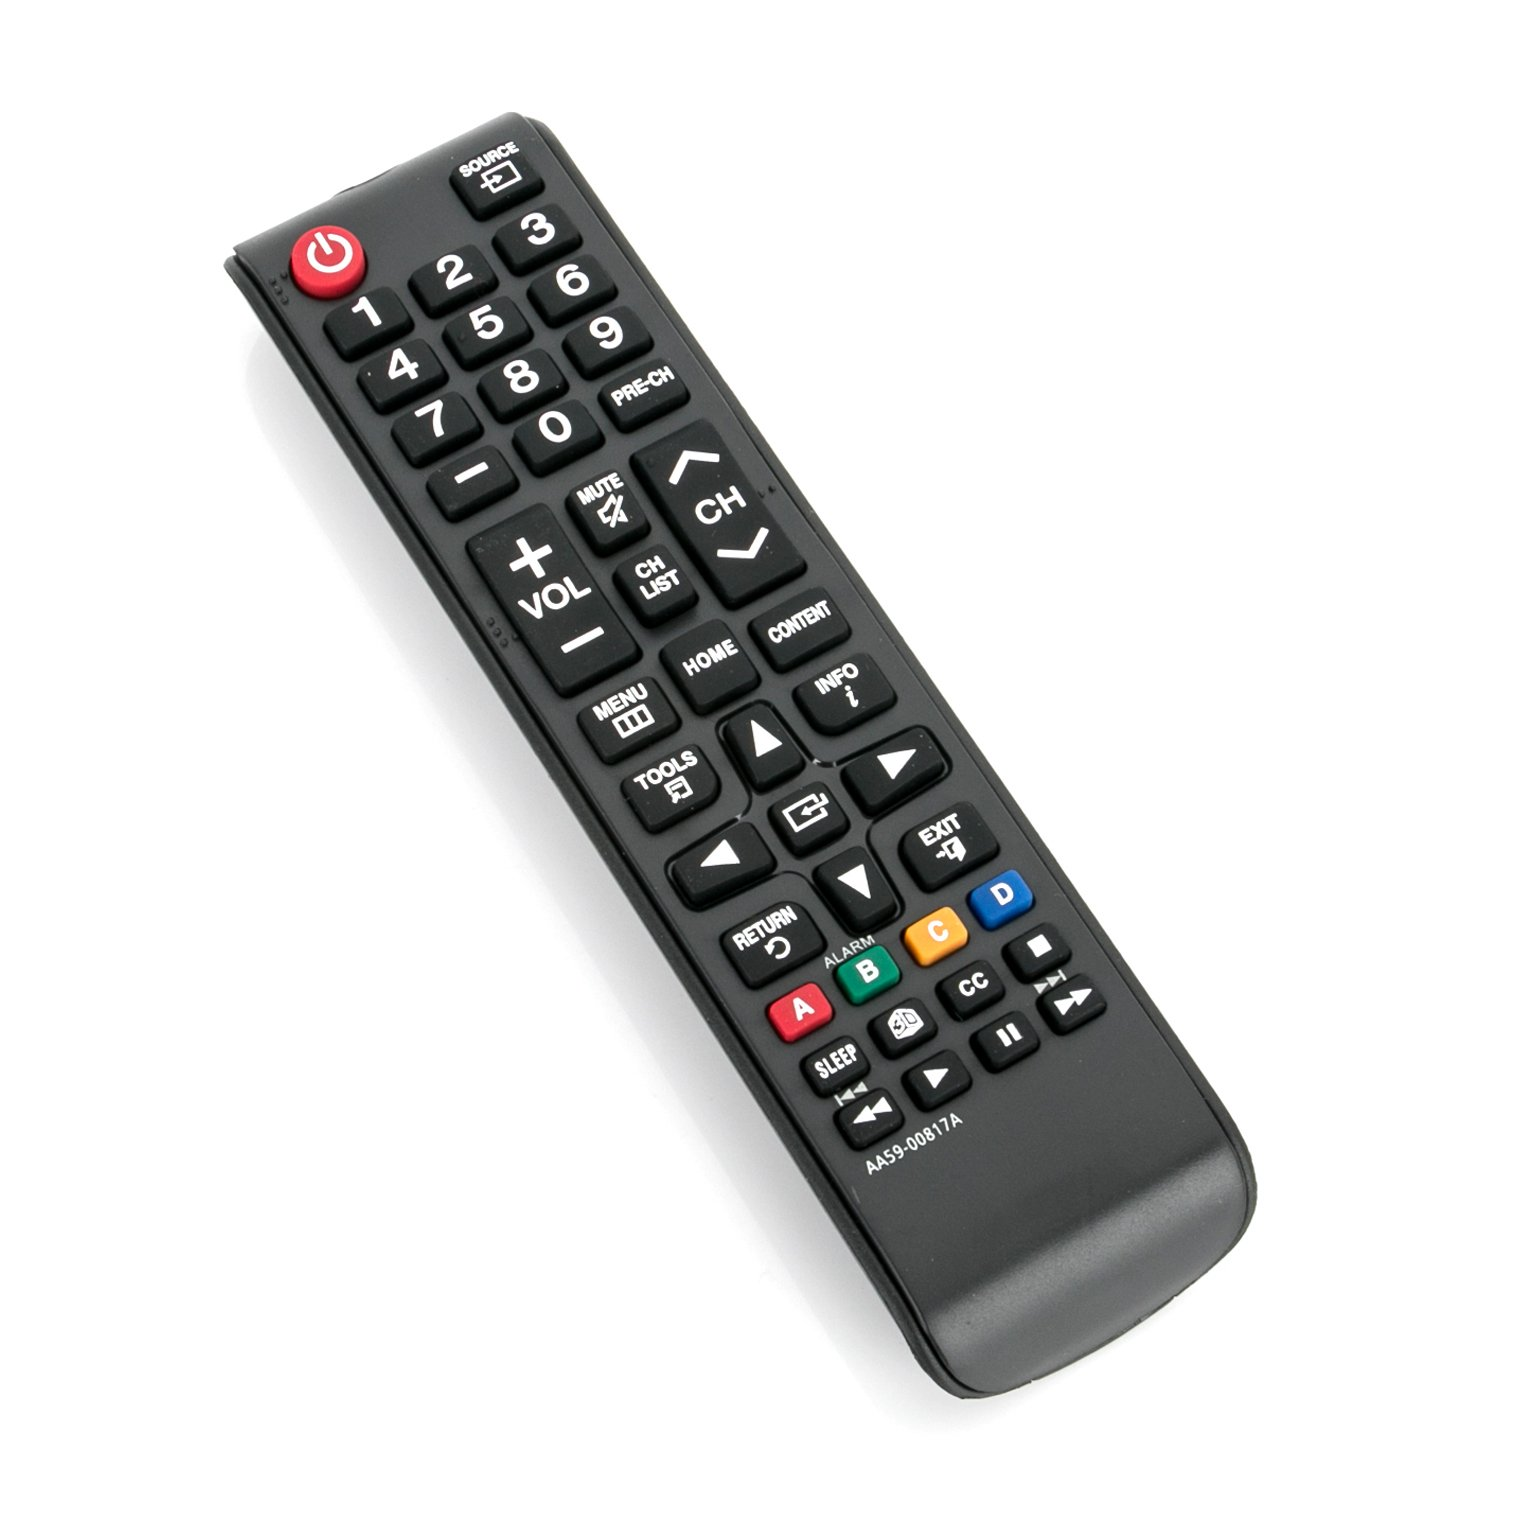 New AA59-00817A Replace Remote Control fit for Samsung LCD TV HG24NE470 HG28NE473 HG32NE460S HG40NE478S HG43NE460S HG50NE478S HG55NE470 HG60NE477S HG65NE478